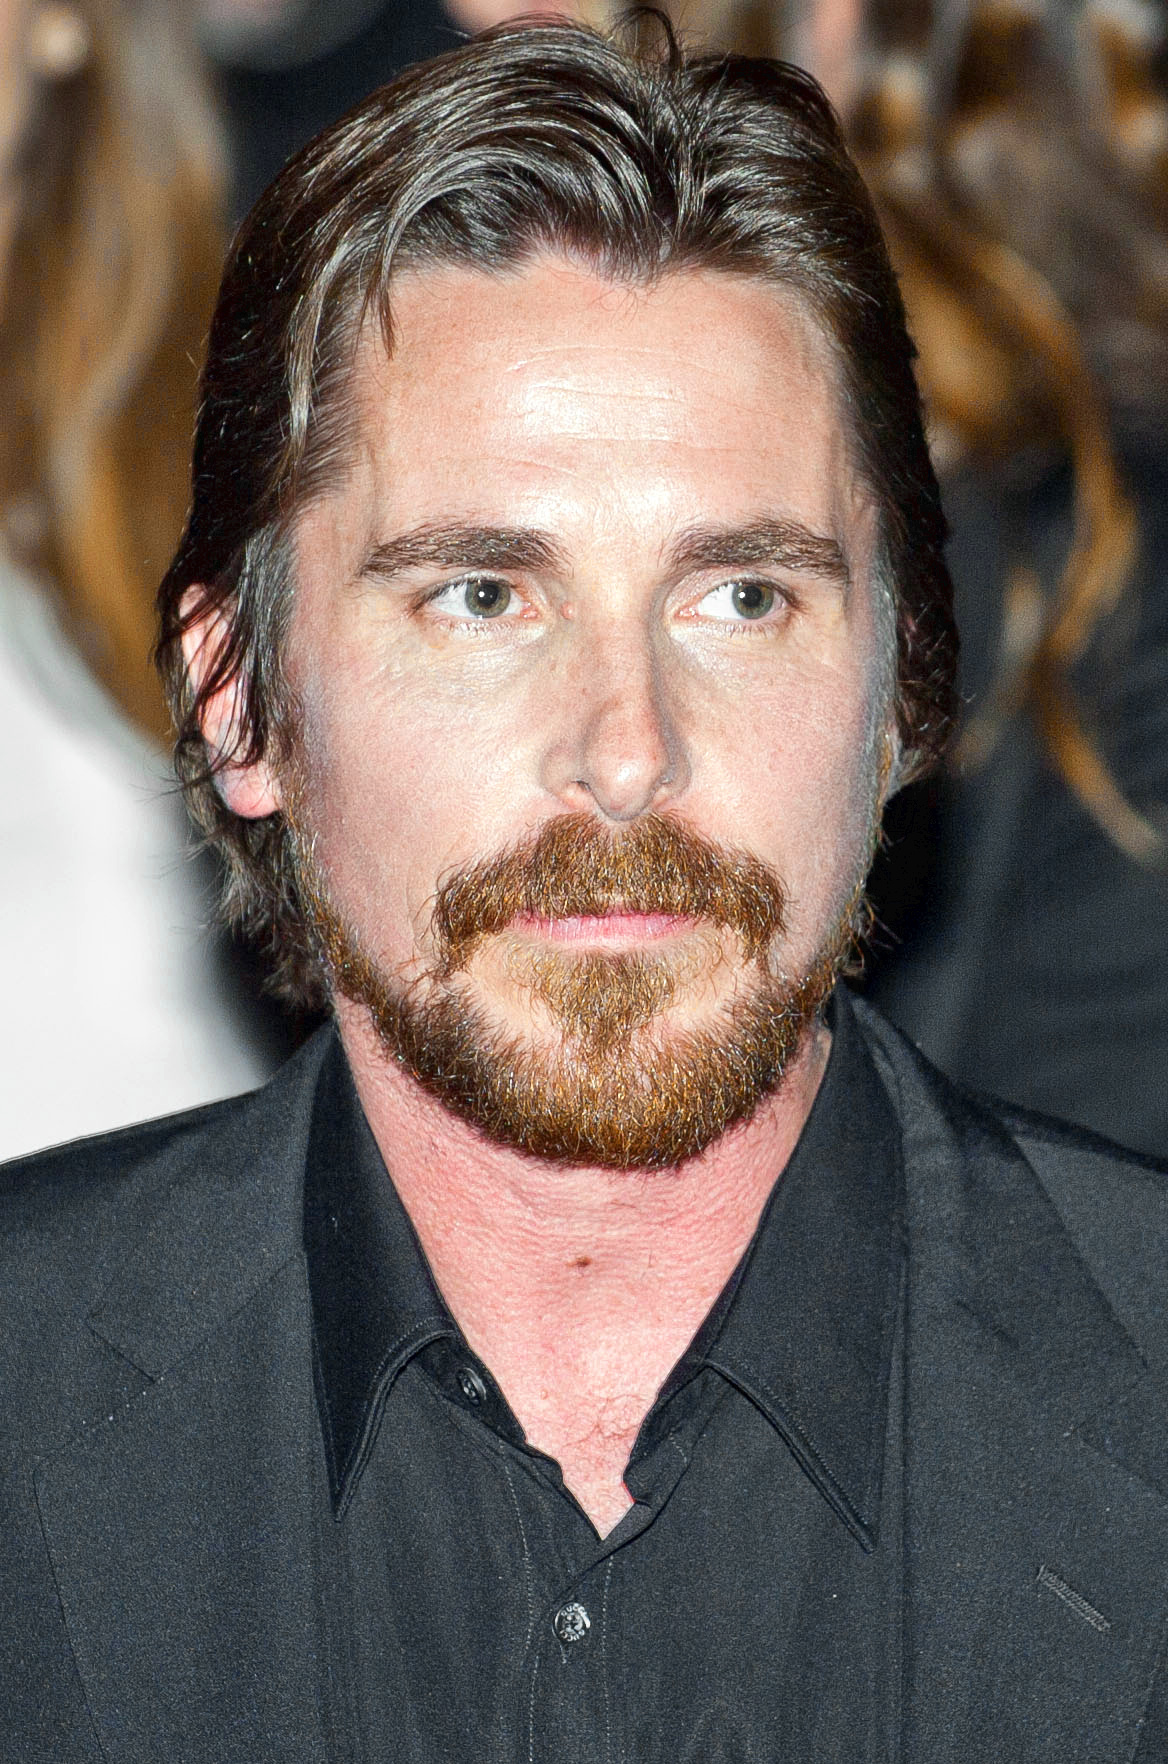 File:Christian Bale 2014 (cropped).jpg - Wikimedia Commons